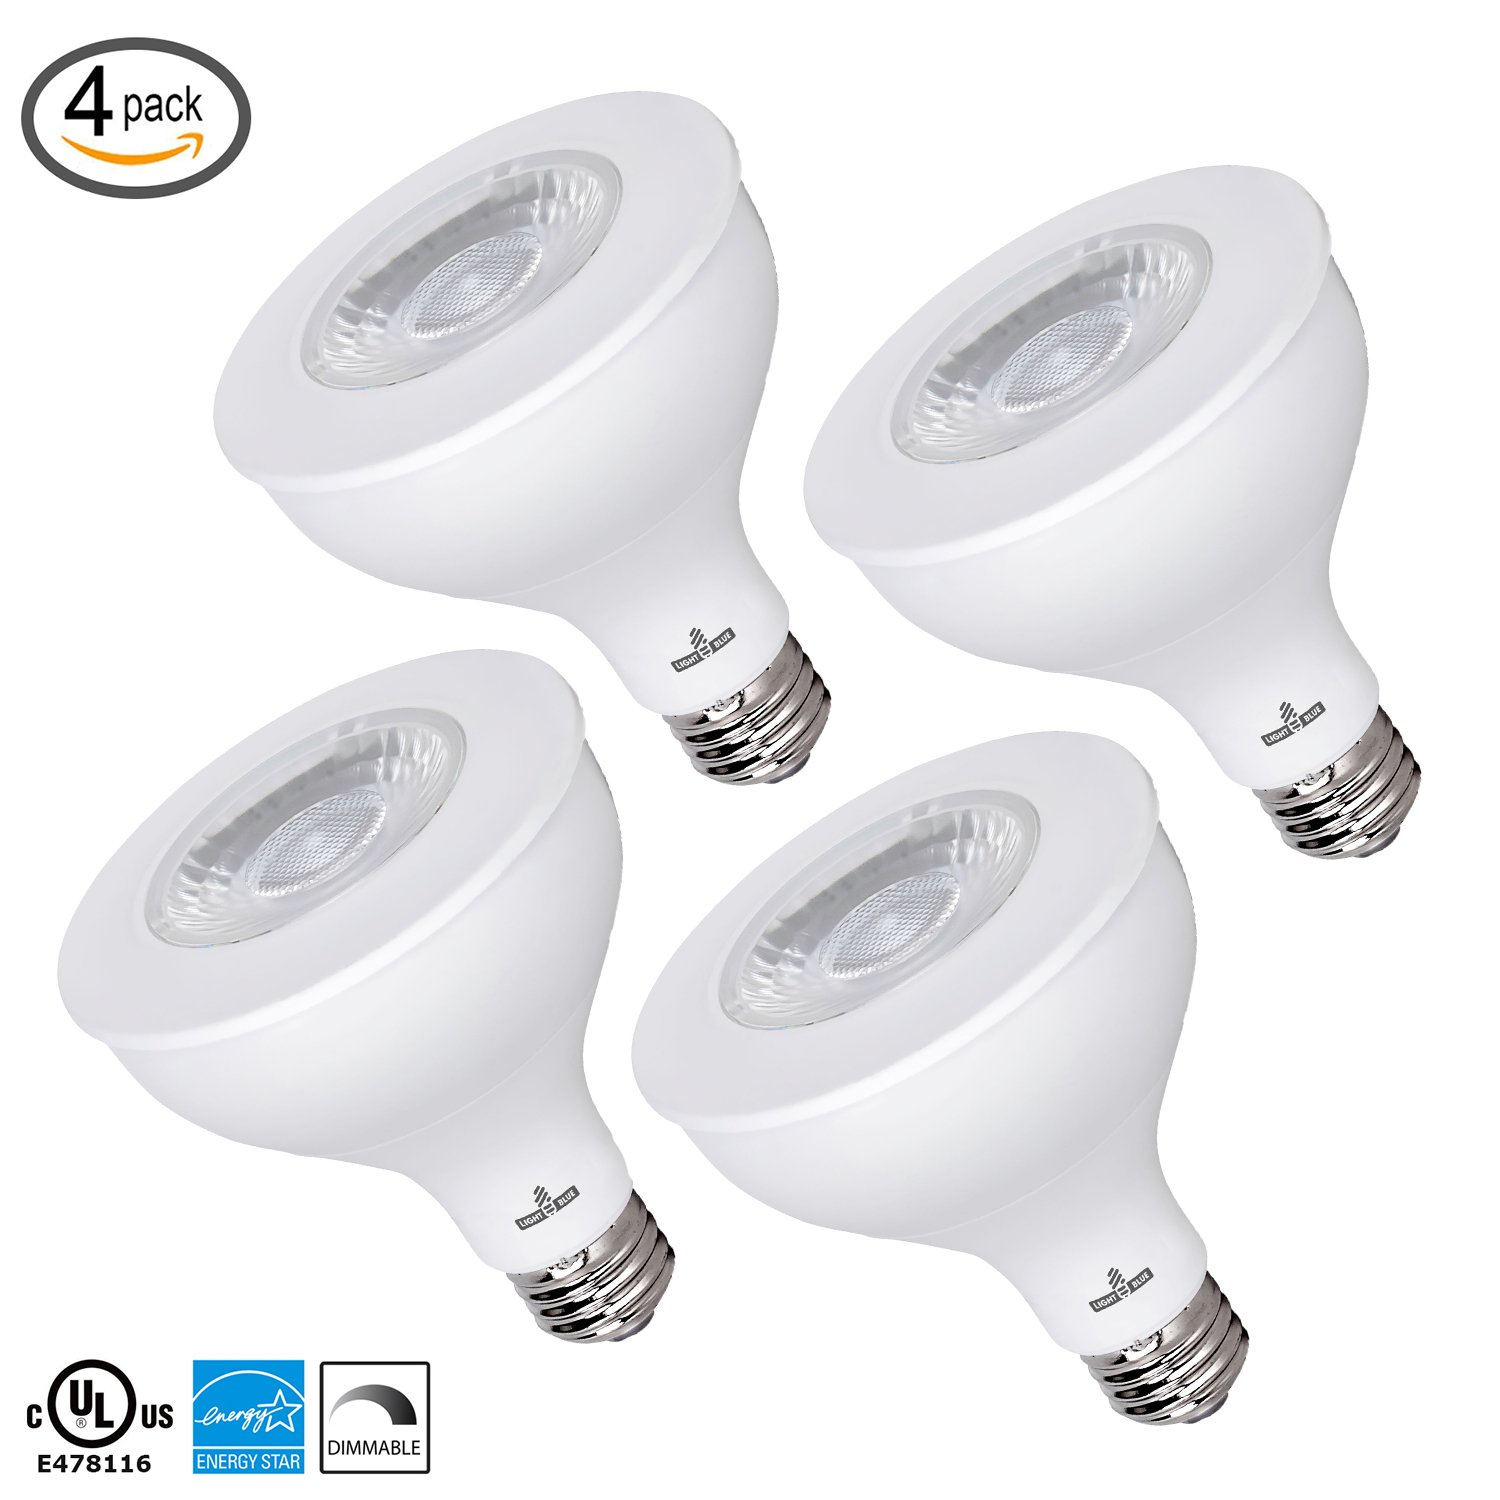 (4-PACK) PAR30 LED Dimmable Bulb, 11W Flood Light Bulb, (75W Equivalent) 3000K Soft White, 850-Lumens, E26 Base Recessed Lights, UL & Energy Star Listed by Light Blue USA